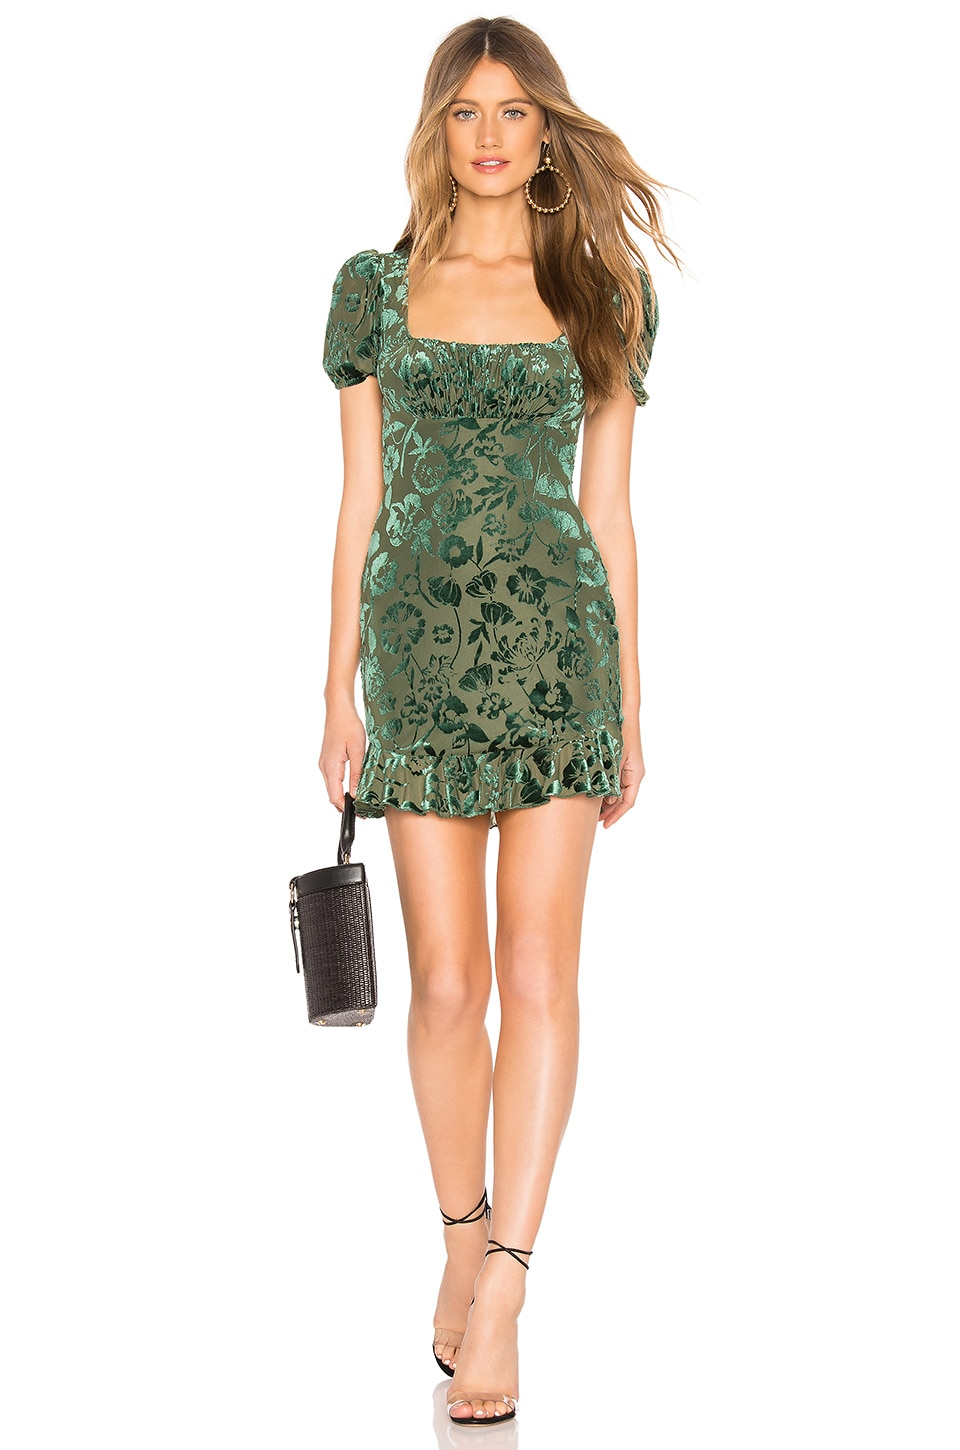 MAJORELLE Carla Mini Dress in Emerald Green